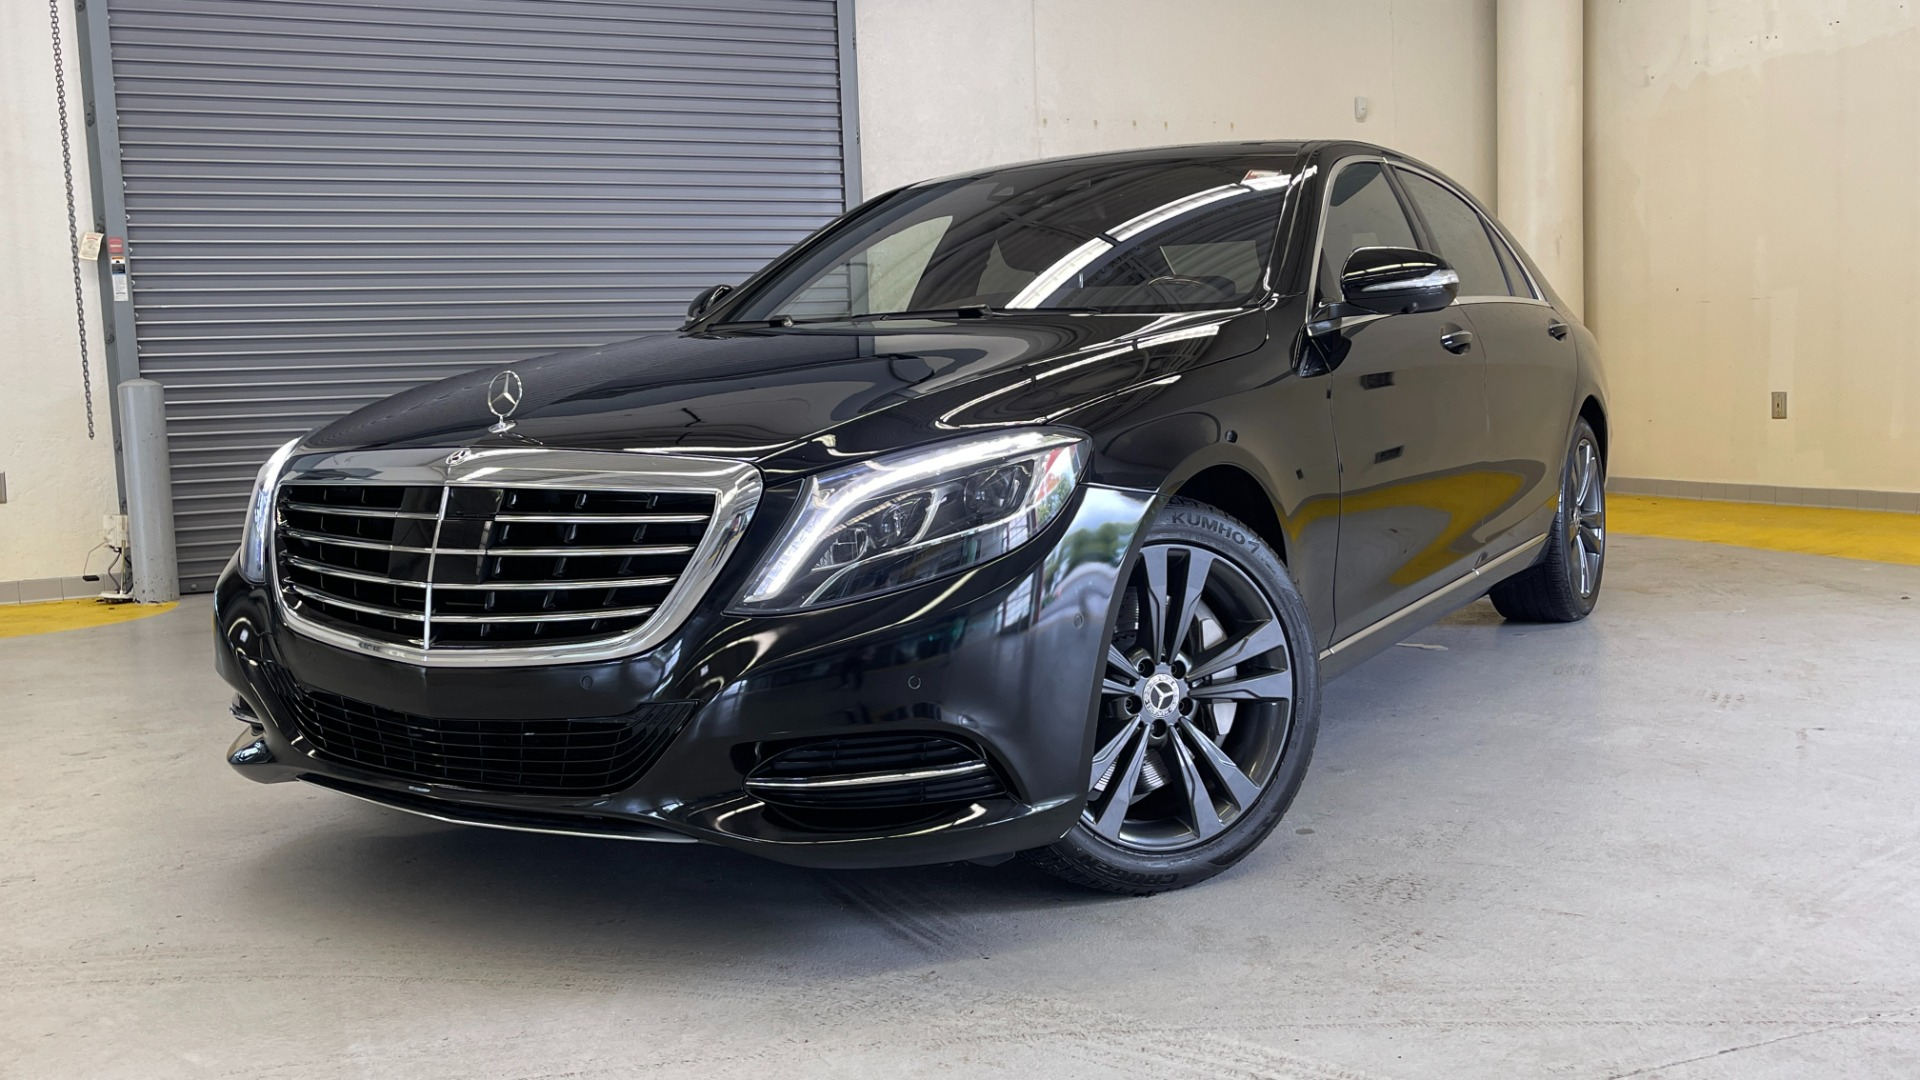 Used 2017 Mercedes-Benz S-CLASS S 550 4MATIC PREMIUM / NAV / BURMESTER / SUNROOF / REARVIEW for sale $58,995 at Formula Imports in Charlotte NC 28227 1